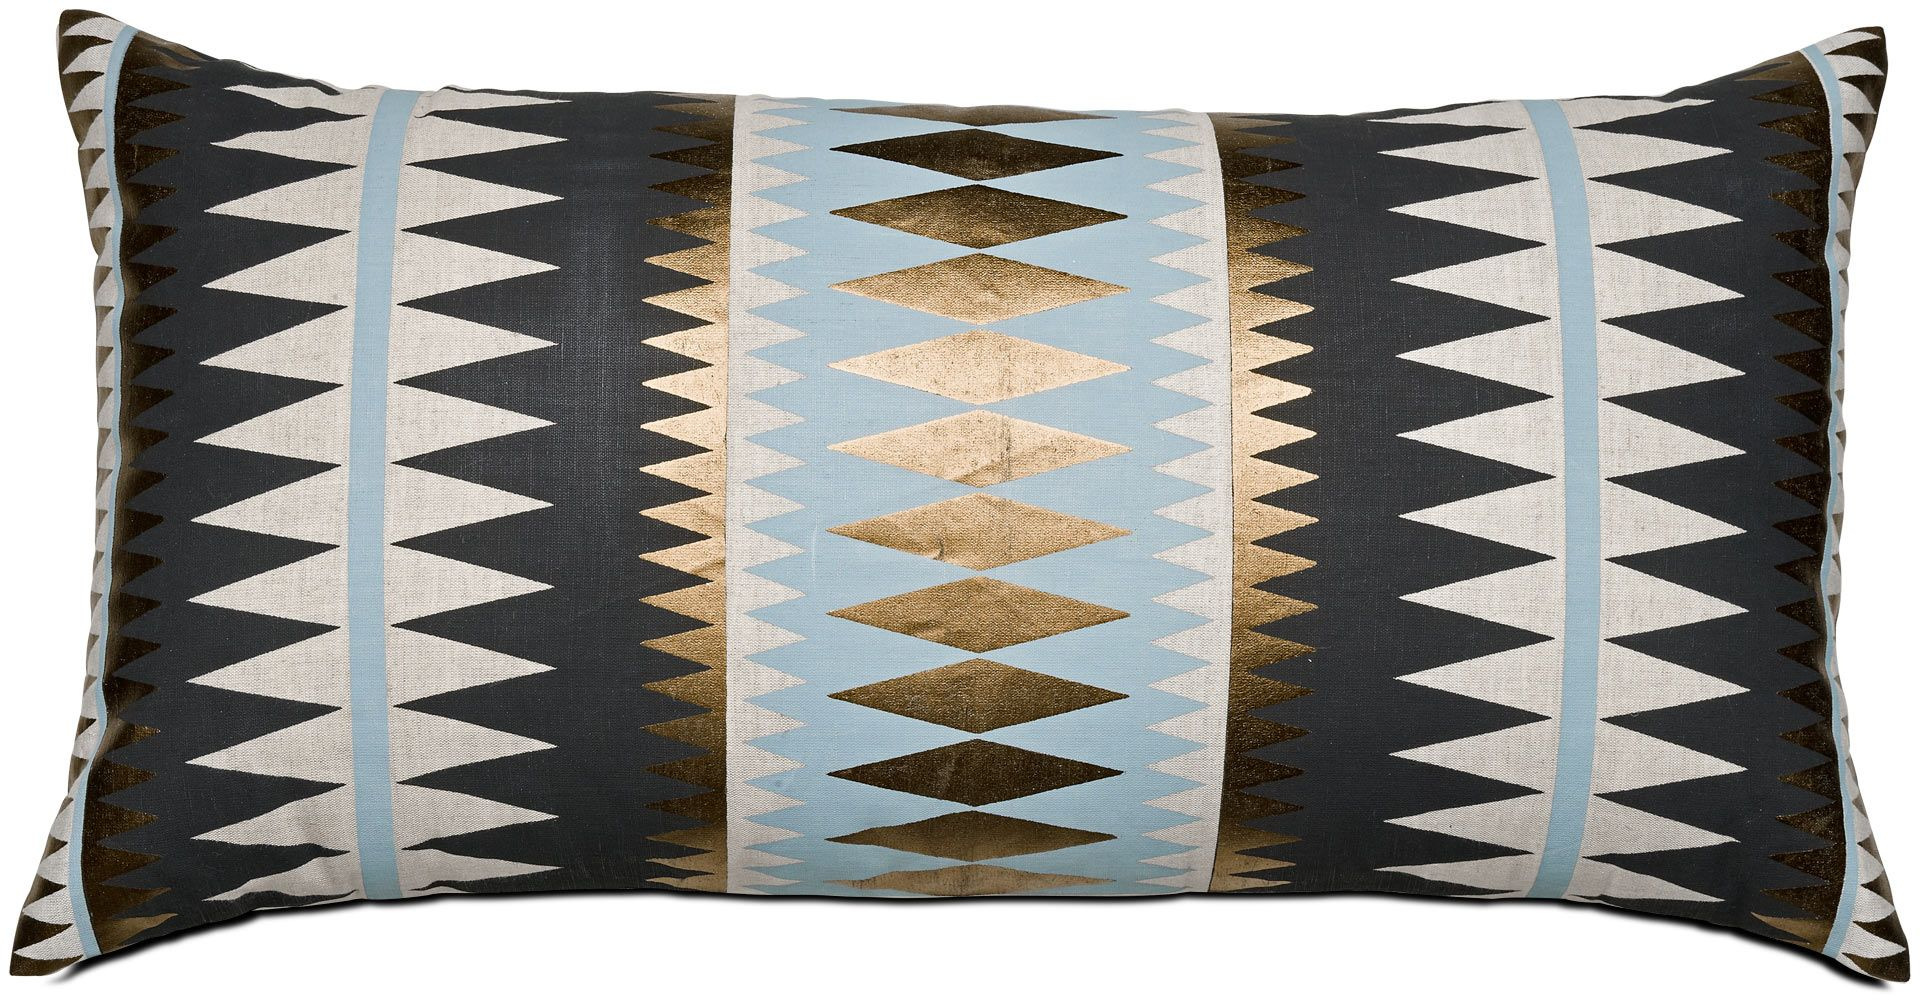 Modern Gold Pillows : BoConcept modern geometric throw pillow in black / light gray / bronze gold. Furniture ...